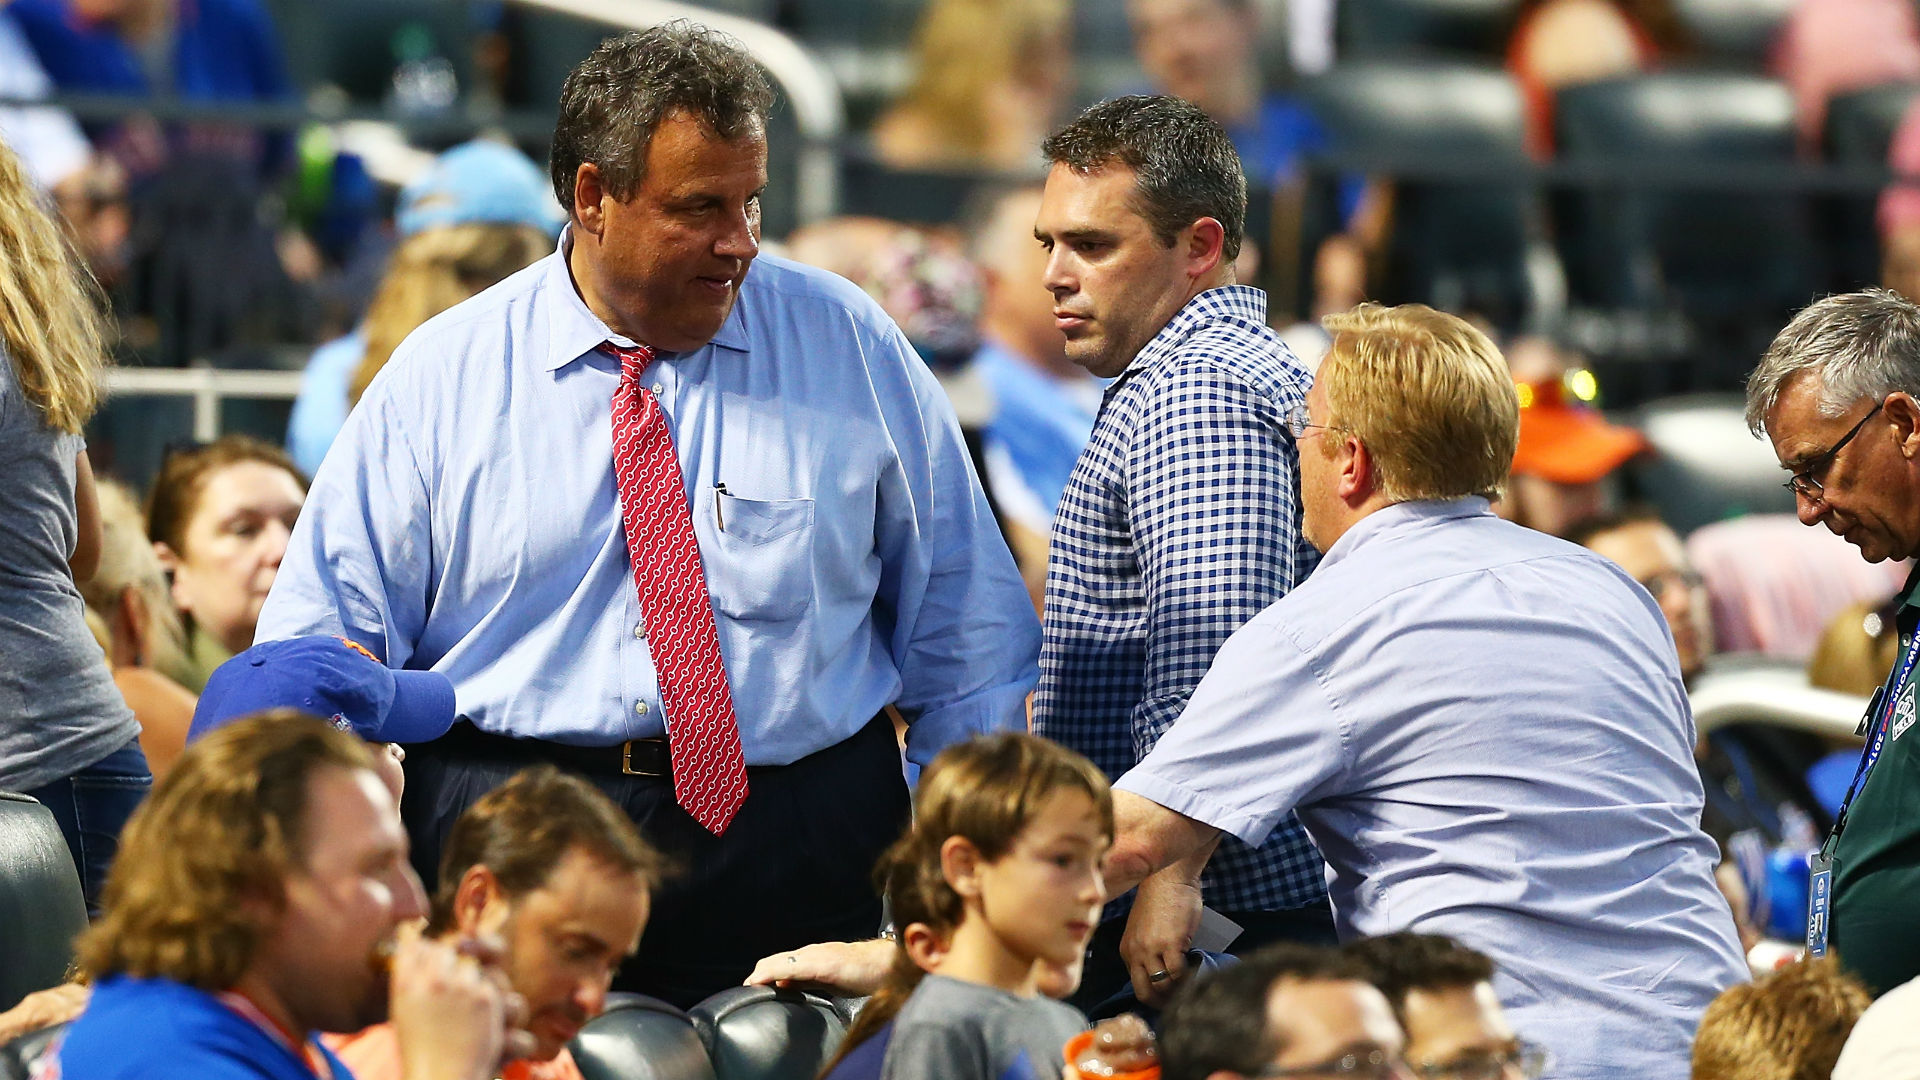 Chris Christie confronts fan at Milwaukee Brewers game